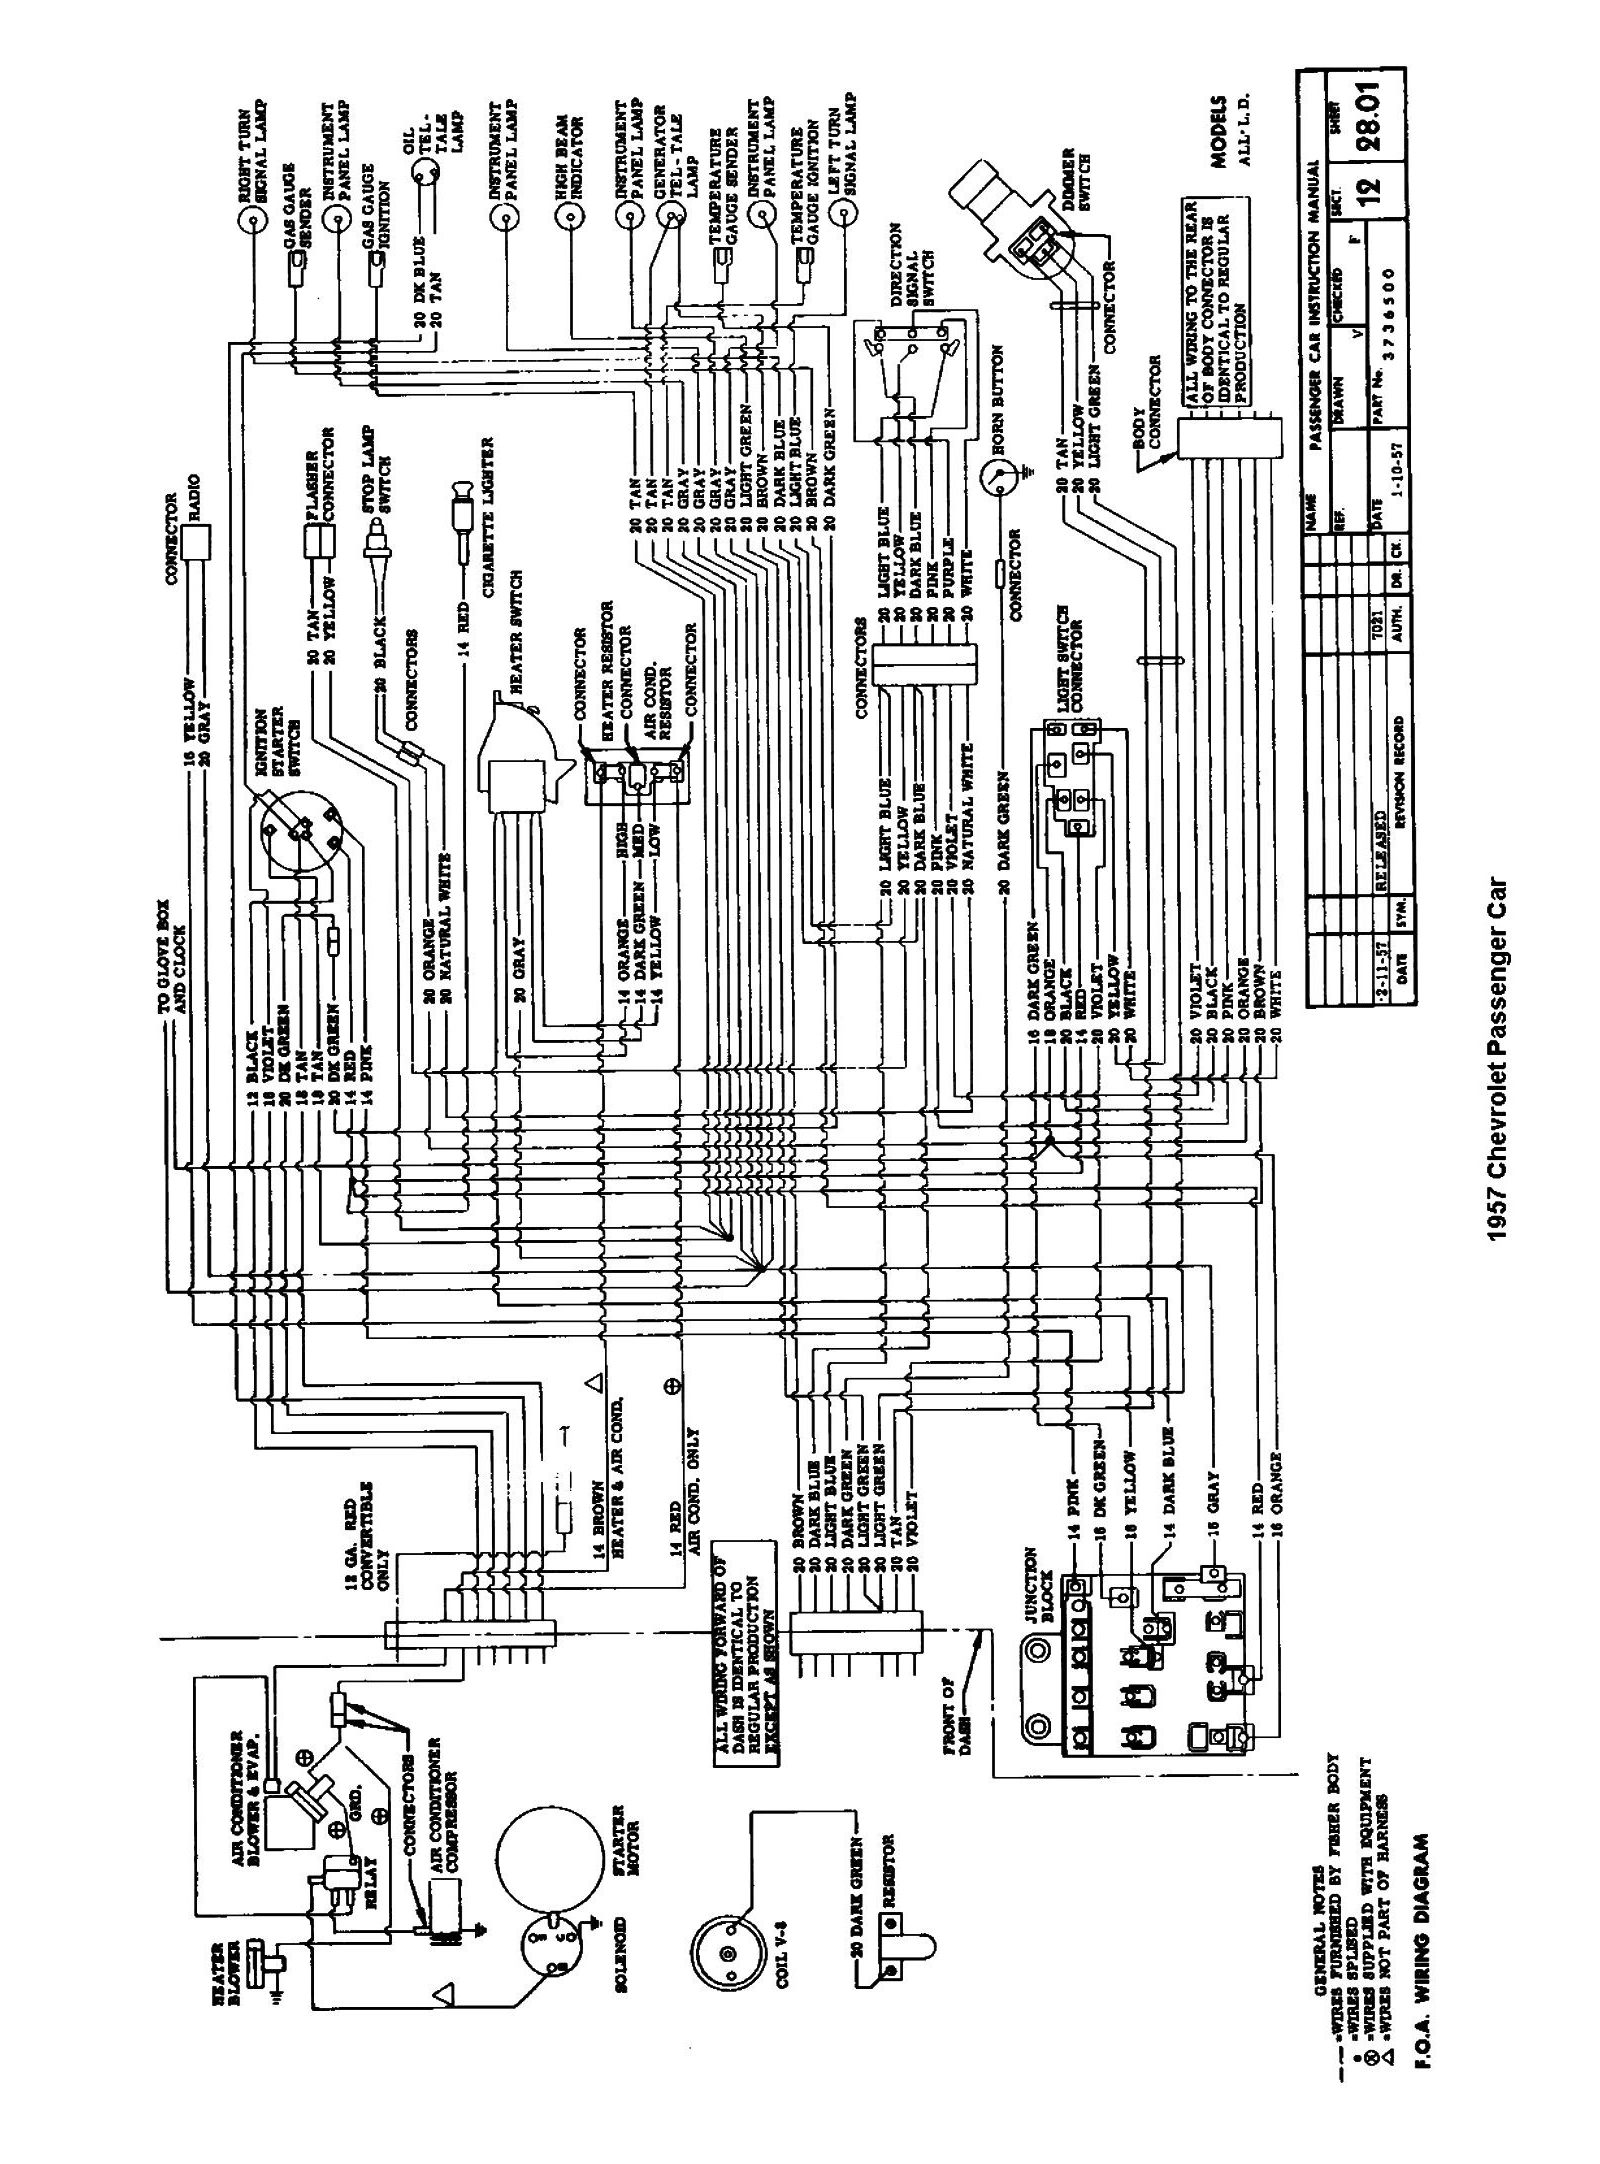 1957 chevy wiring harness diagram for horn wiring diagram american autowire 500434 1957 chevy